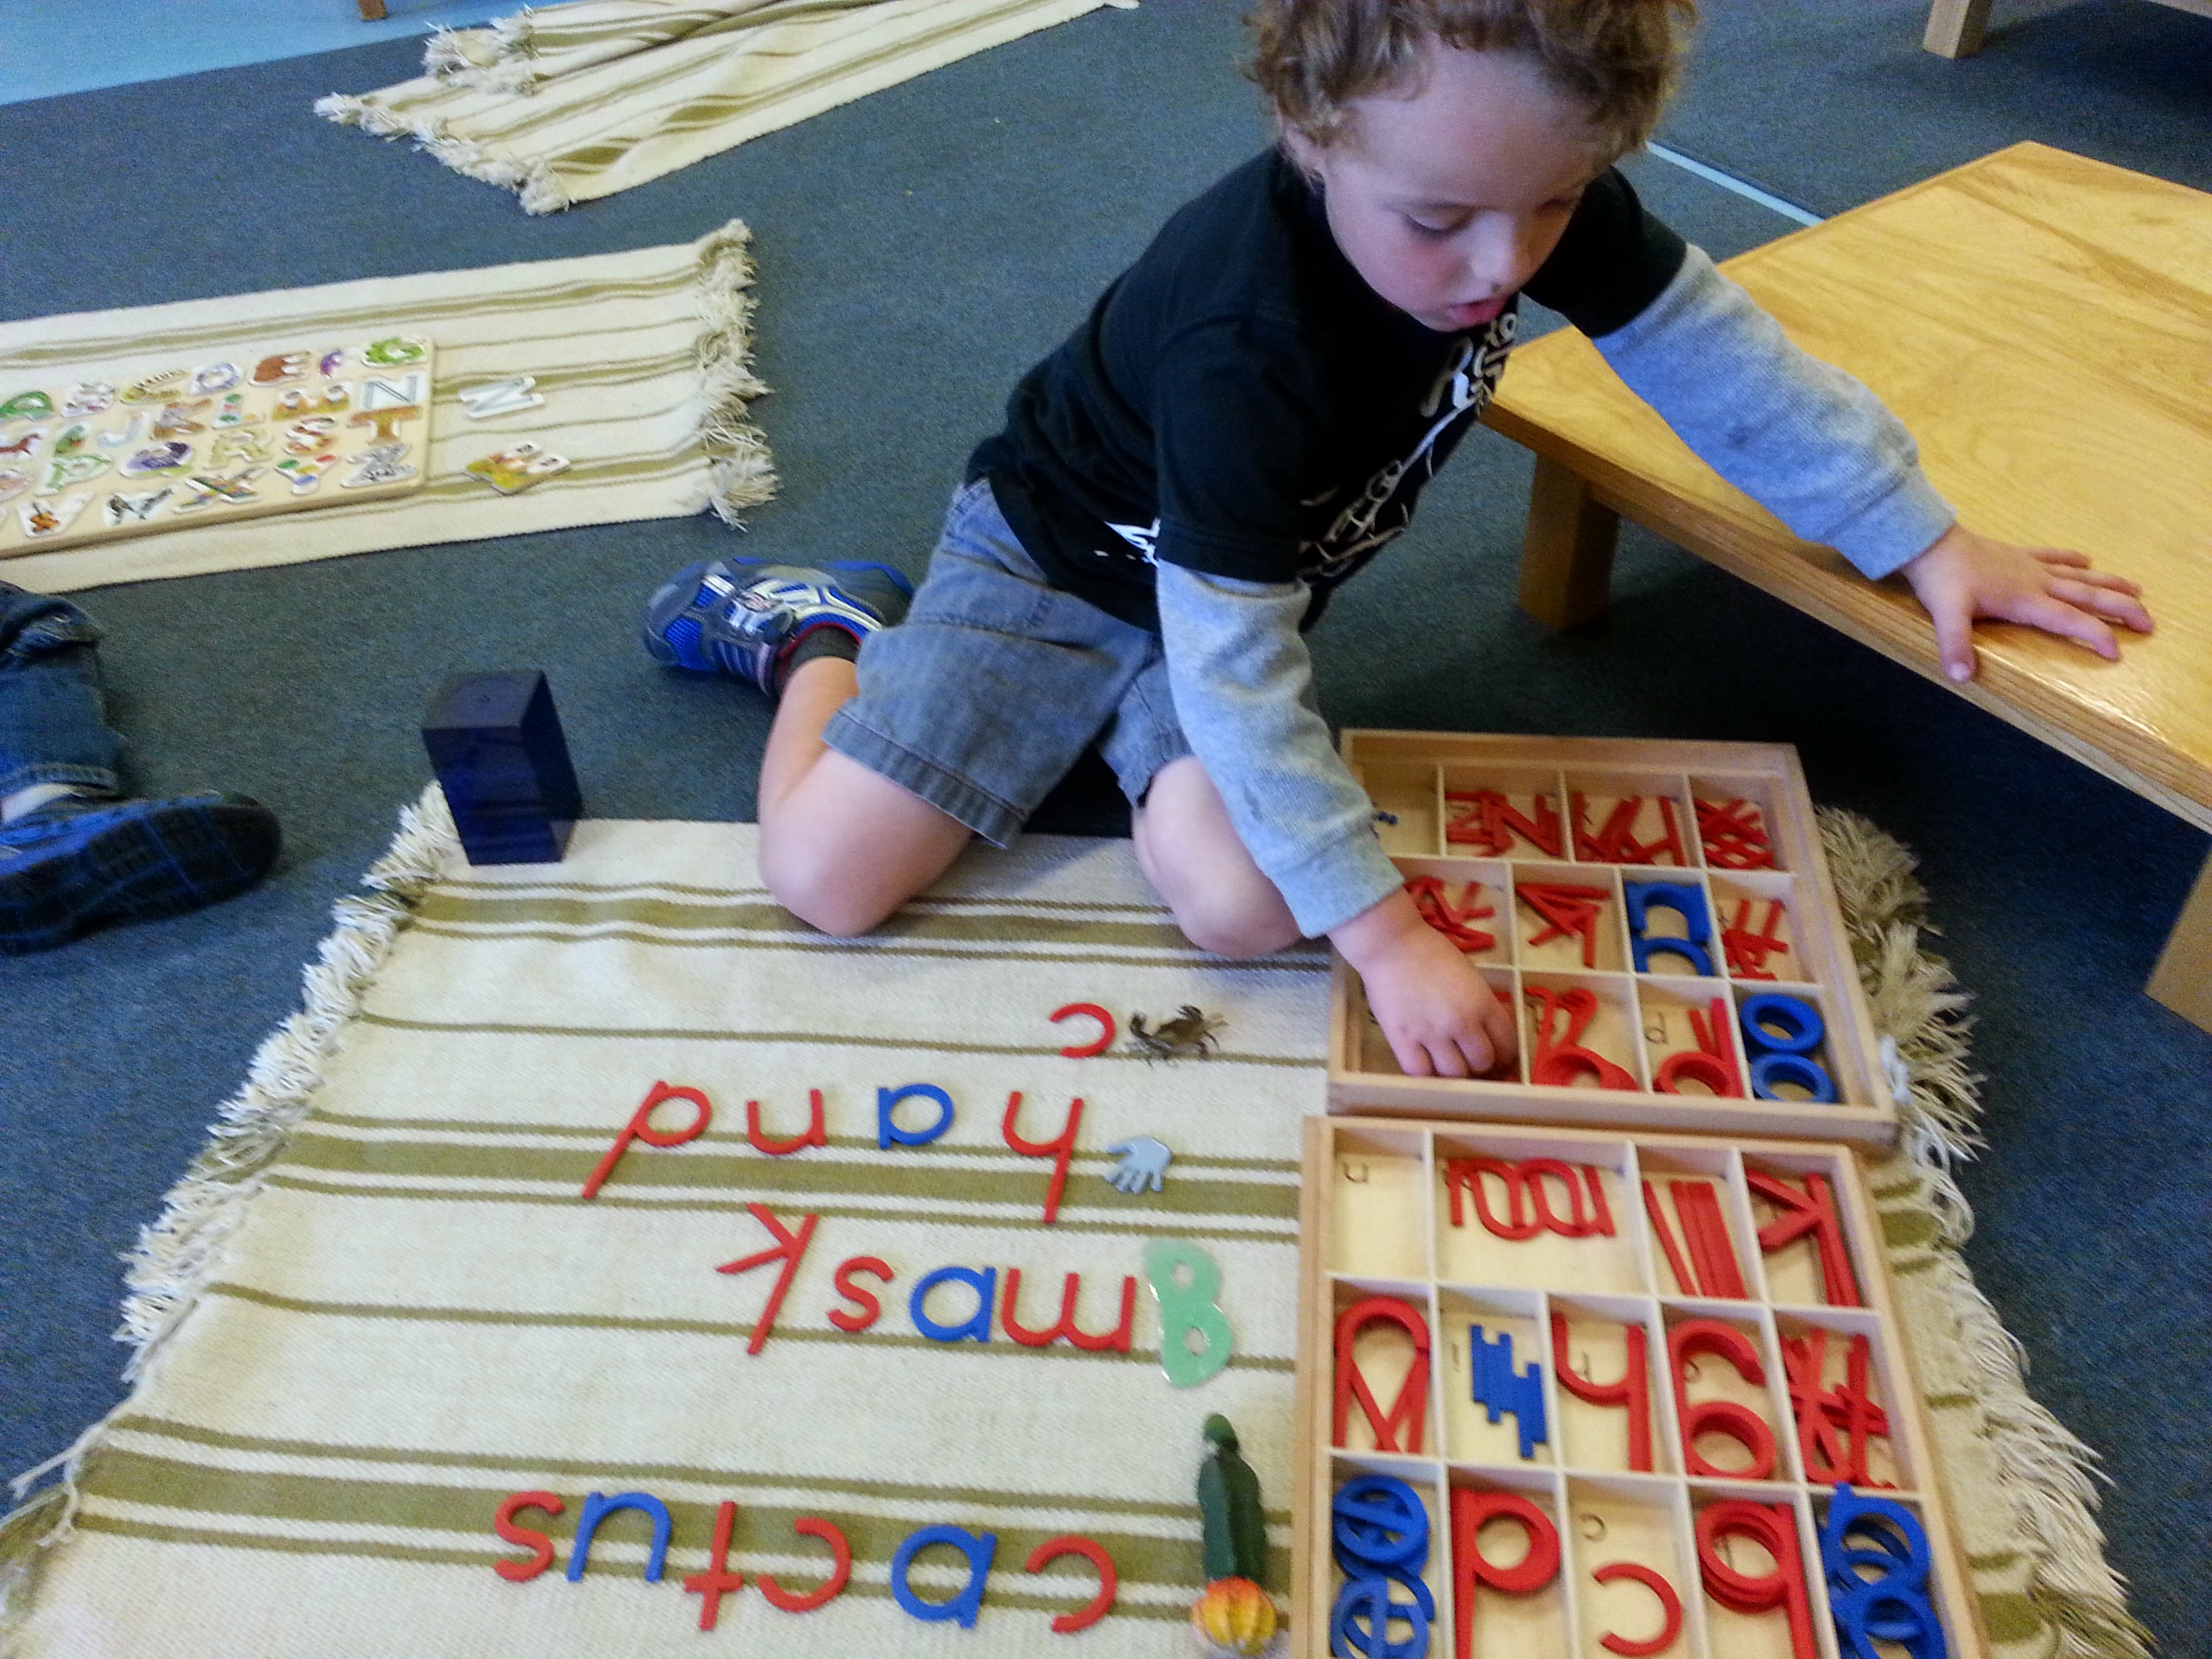 Working with the Moveable Alphabet